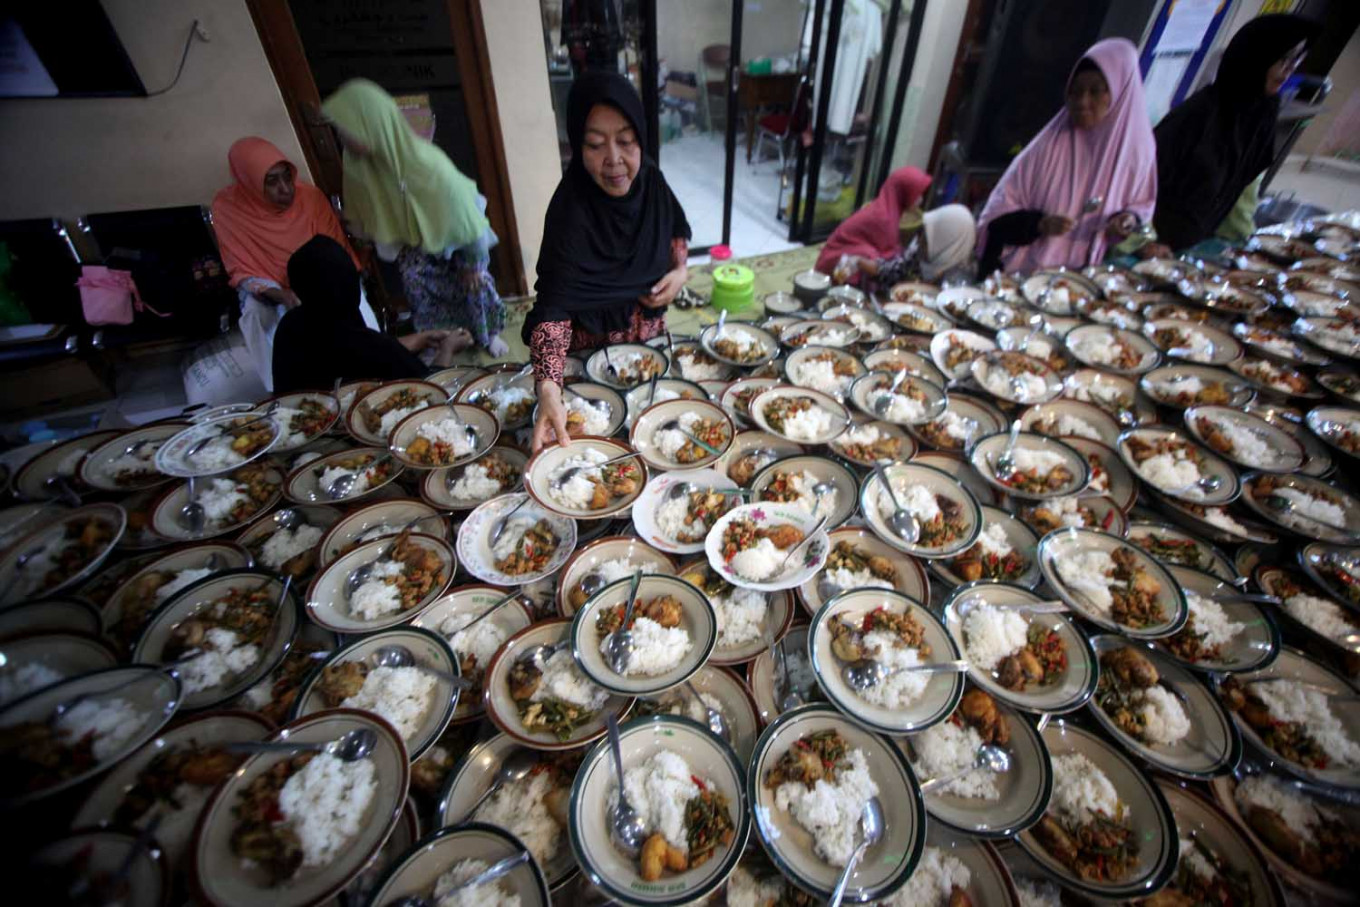 Feast your eyes on this: The mosque staff alongside volunteers prepare iftar meals at Jogokariyan Mosque in Yogyakarta. JP/Boy T Harjanto